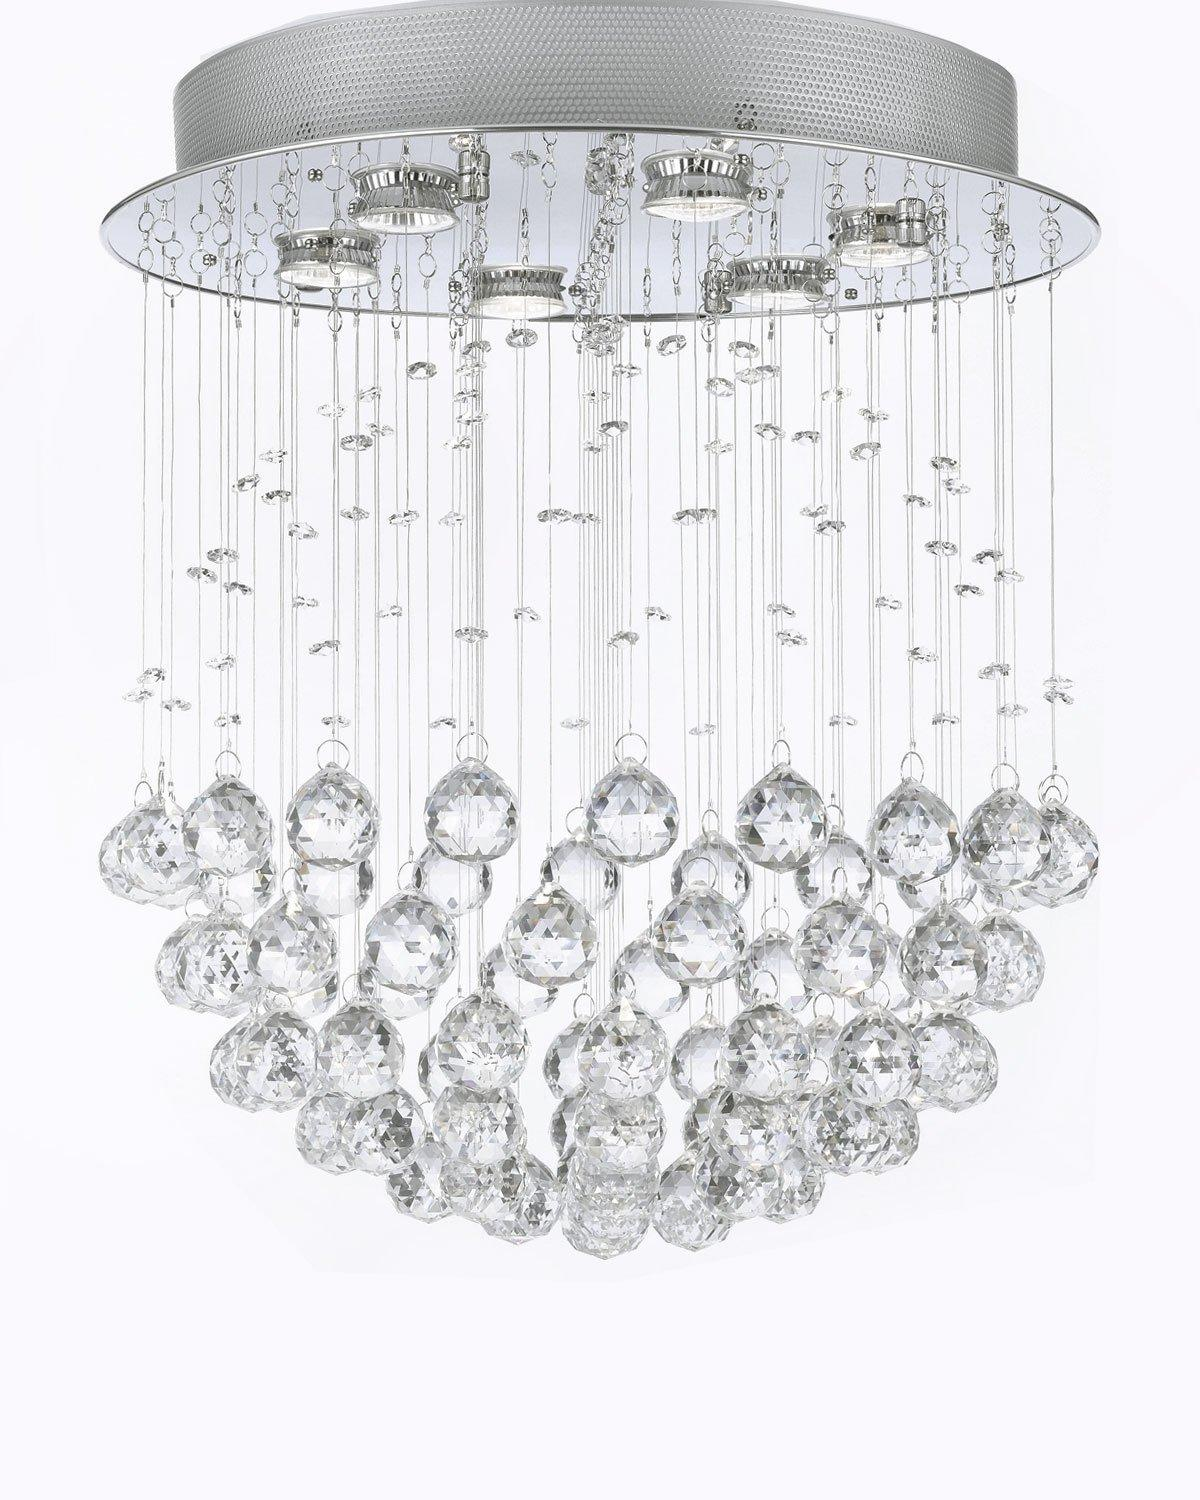 Modern Contemporary *Rain Drop* Chandelier Lighting With Faceted Crystal Balls